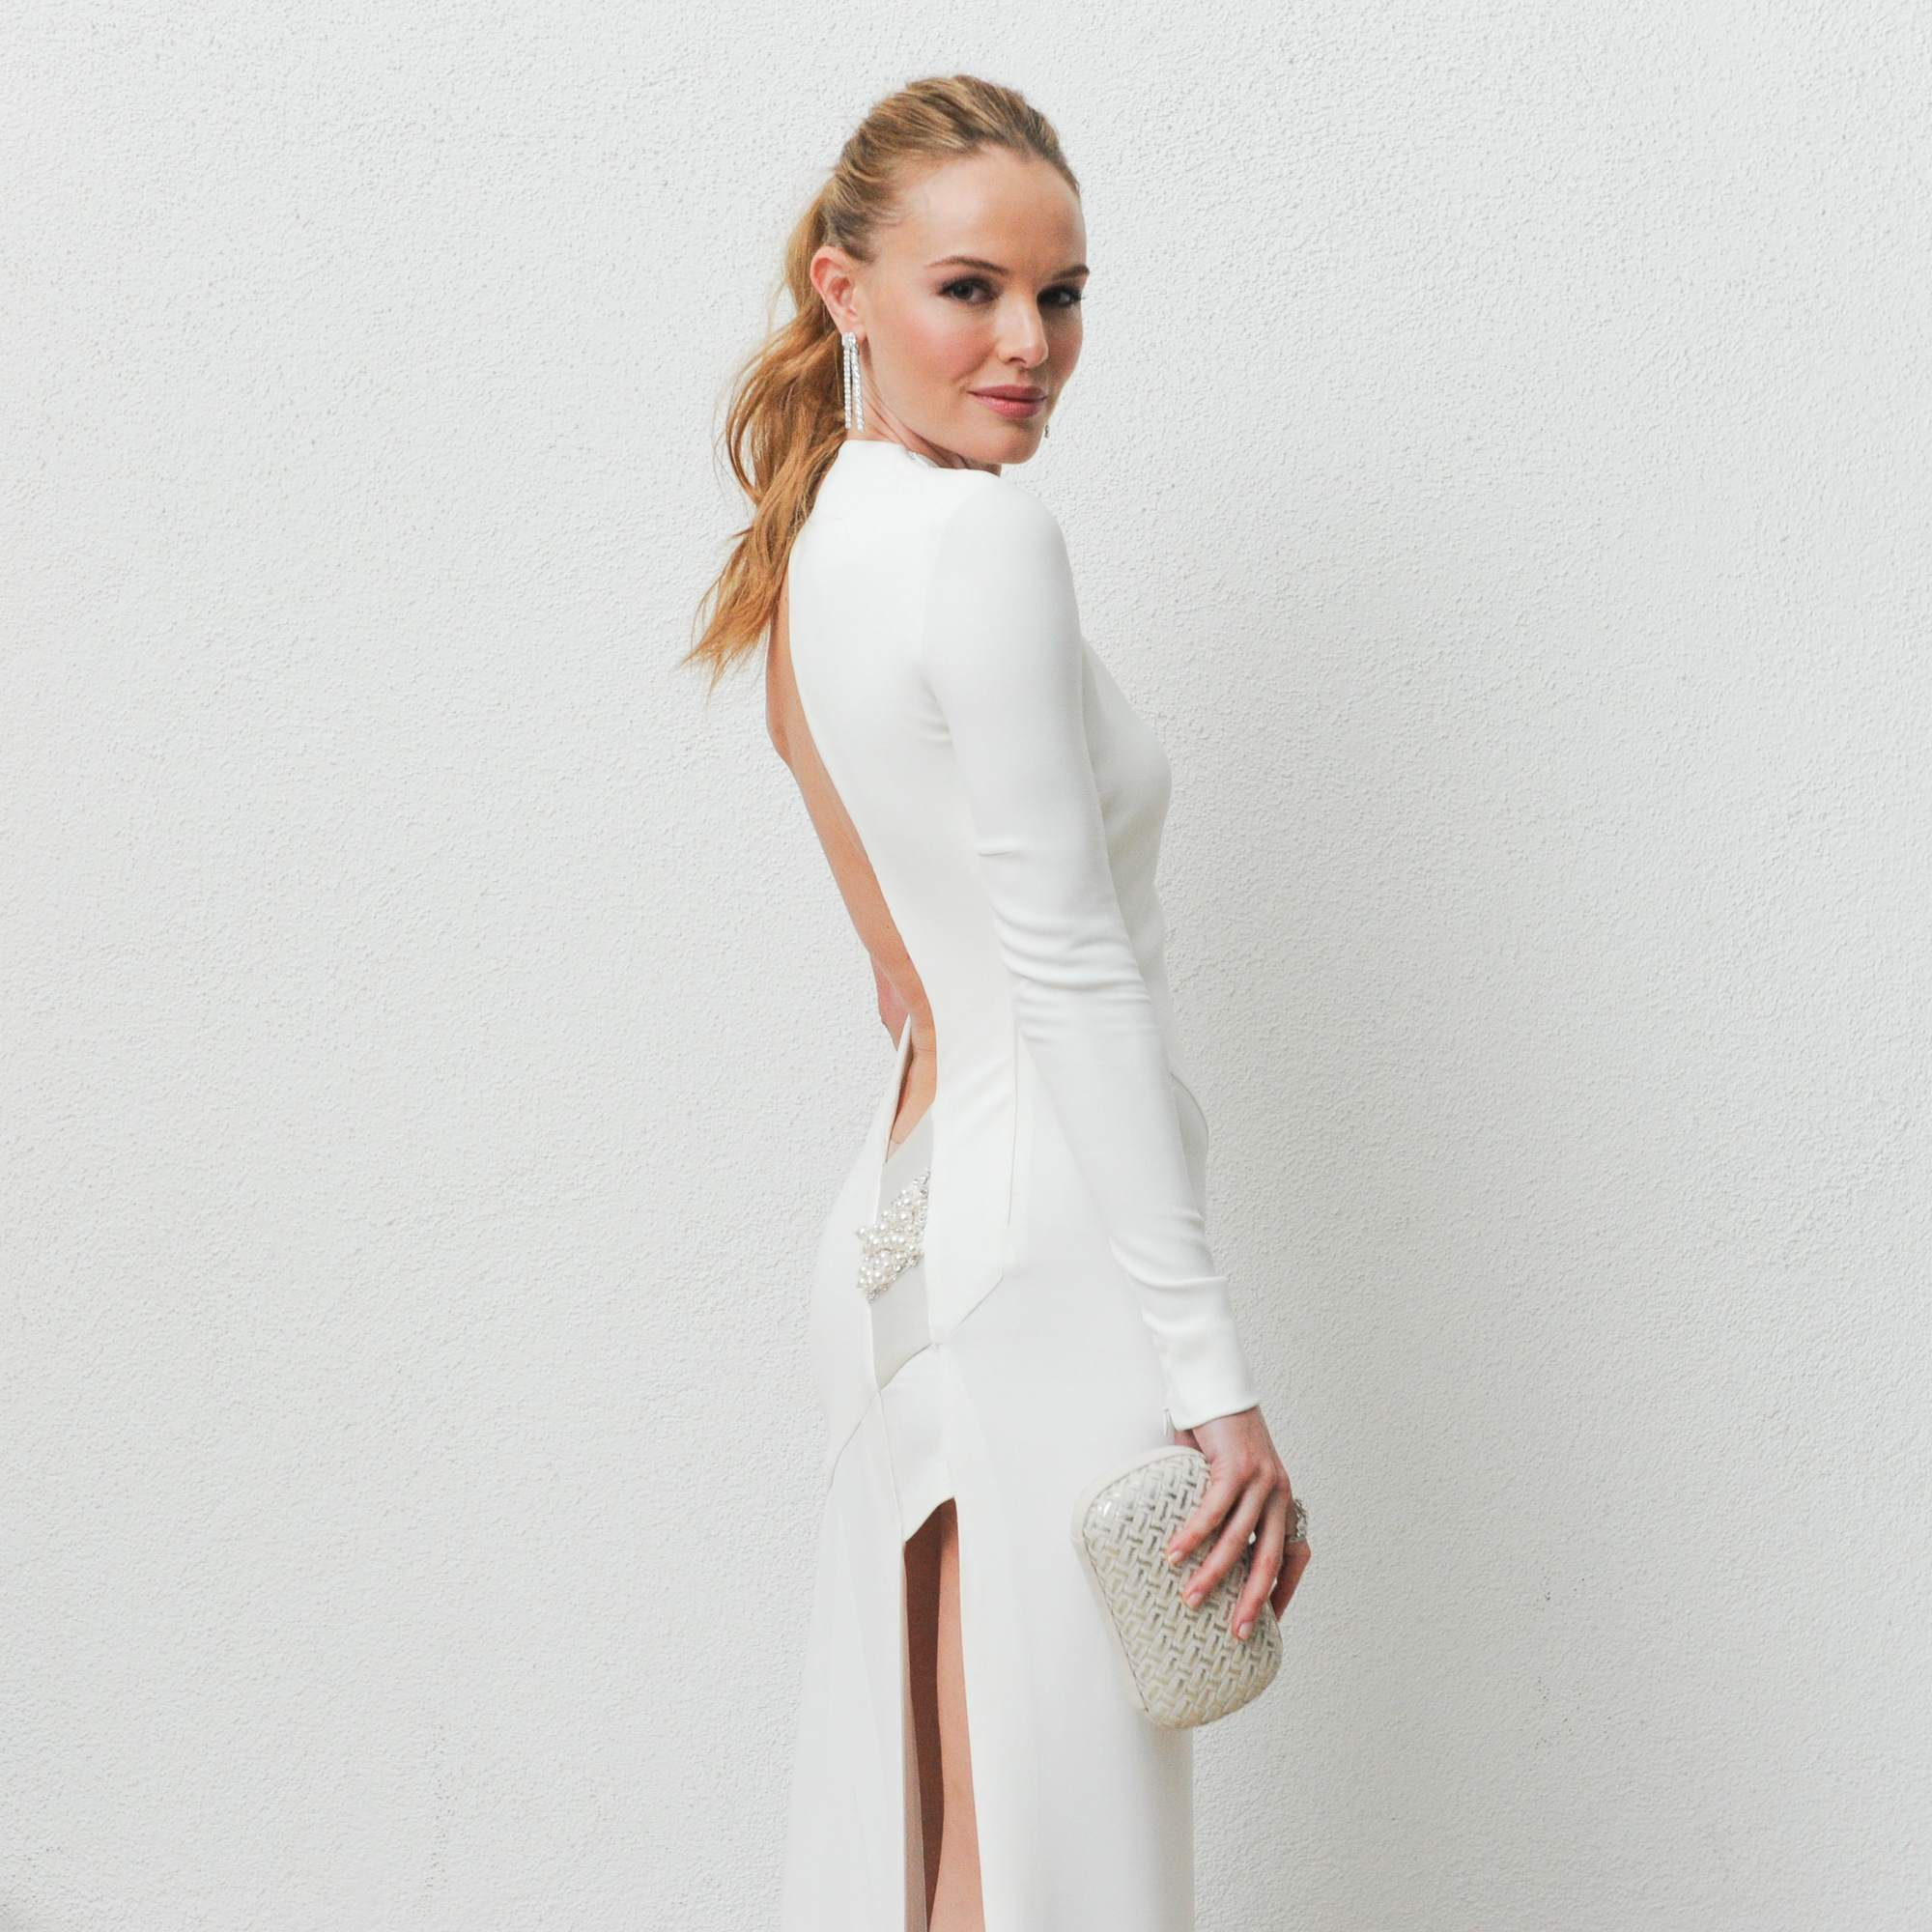 side view of kate bosworth with blonde long hair in high ponytail